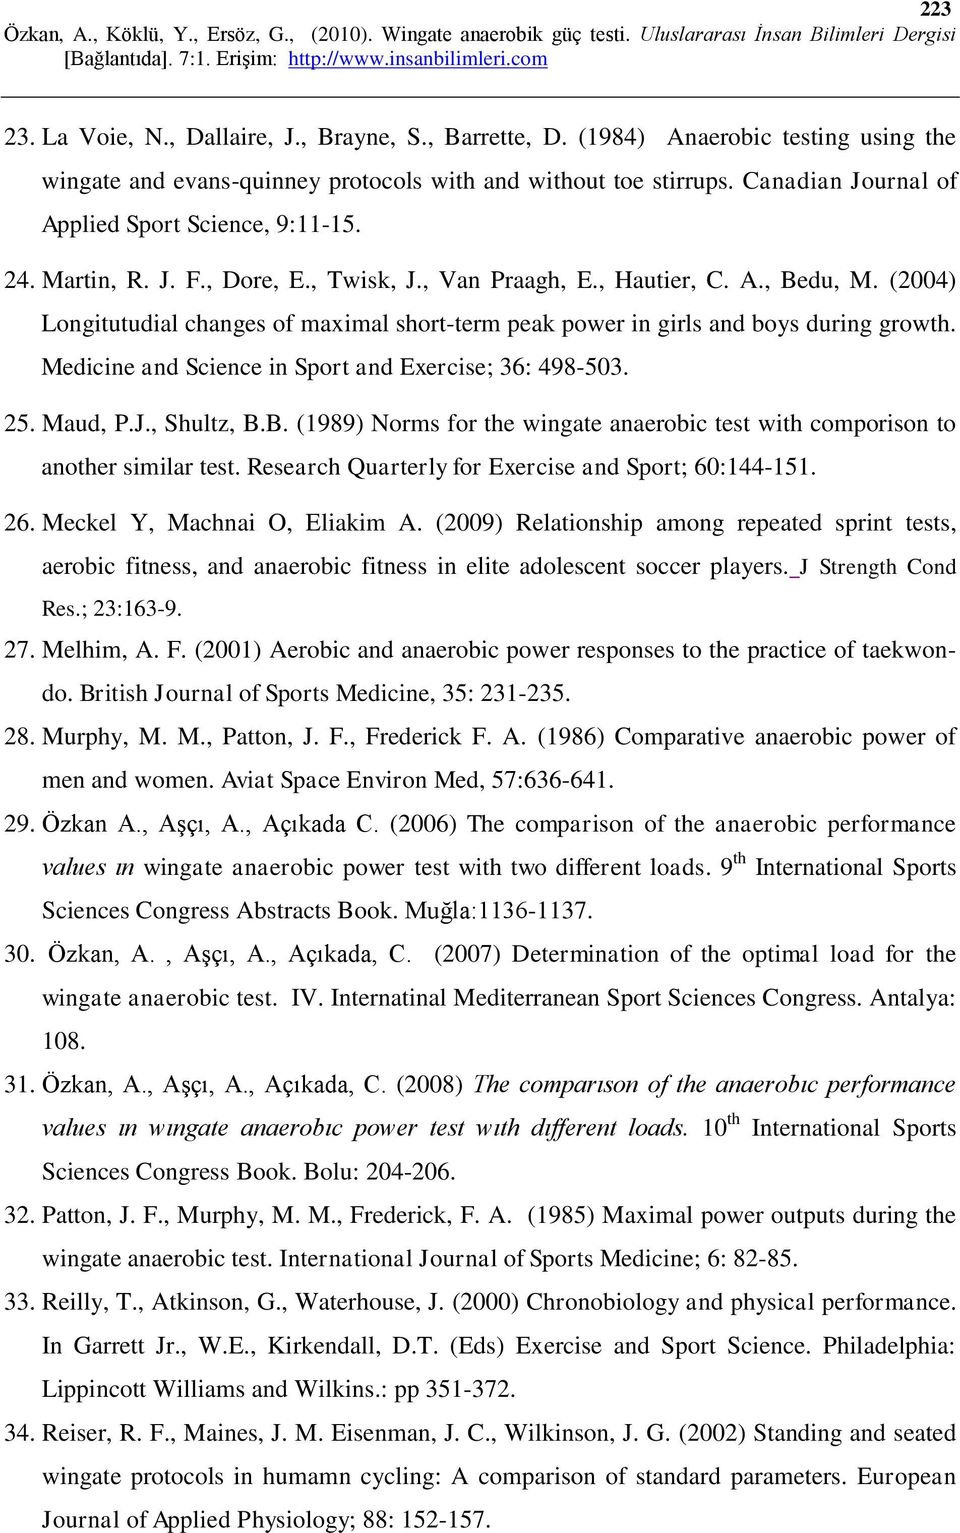 (2004) Longitutudial changes of maximal short-term peak power in girls and boys during growth. Medicine and Science in Sport and Exercise; 36: 498-503. 25. Maud, P.J., Shultz, B.